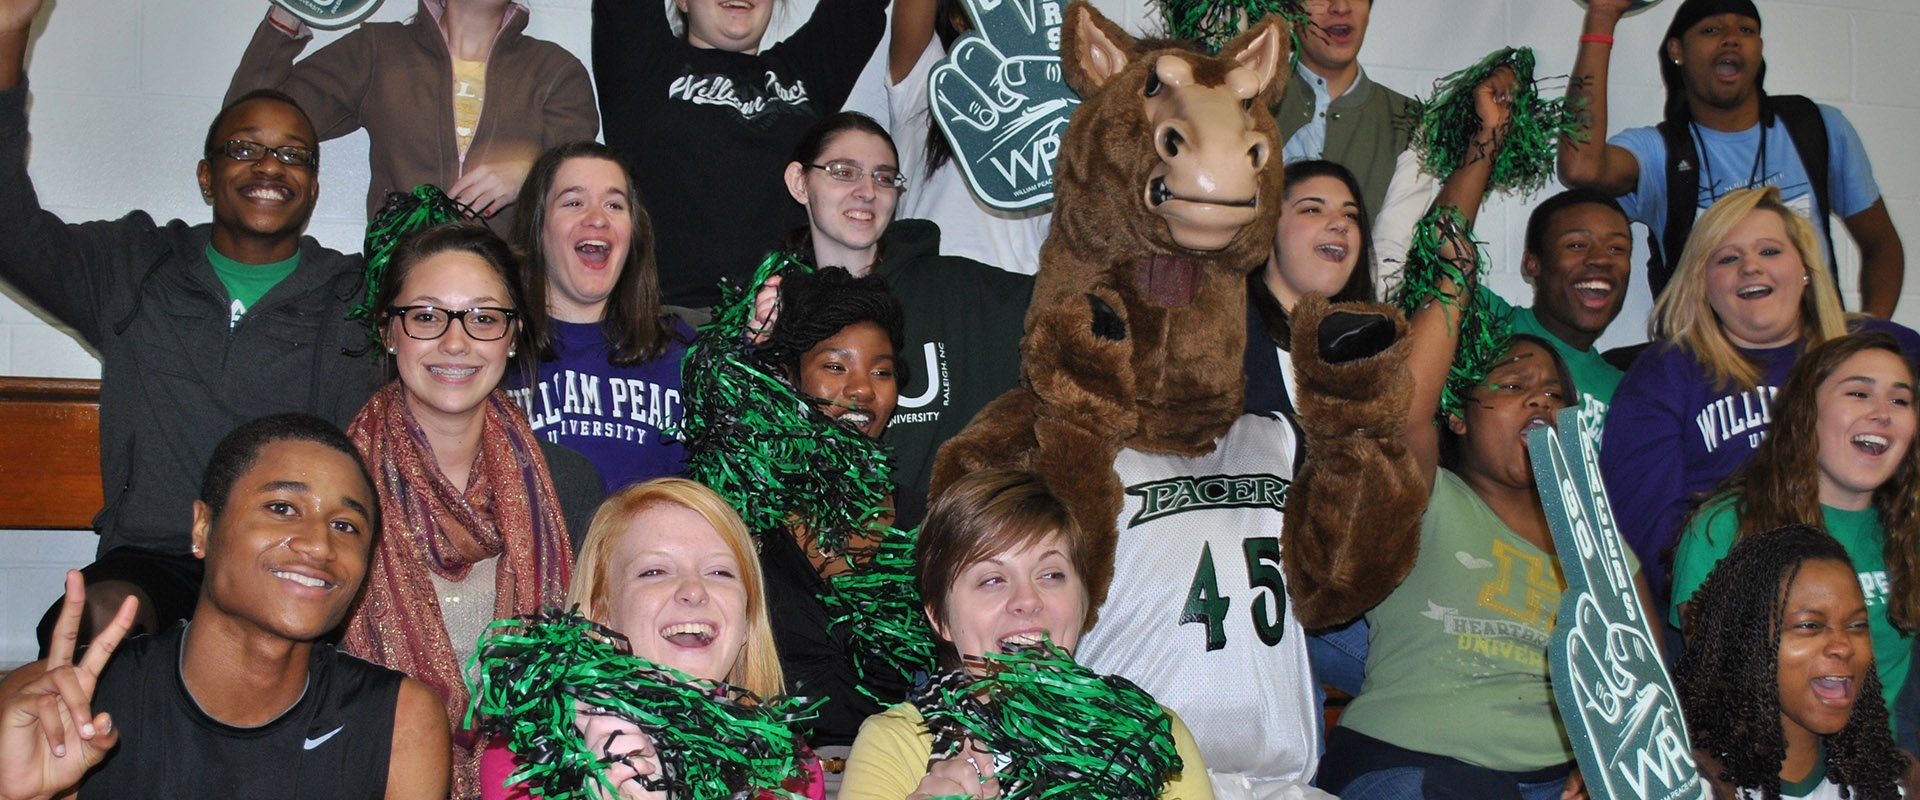 Atheltic Events at WPU - Athletics Pacer Day